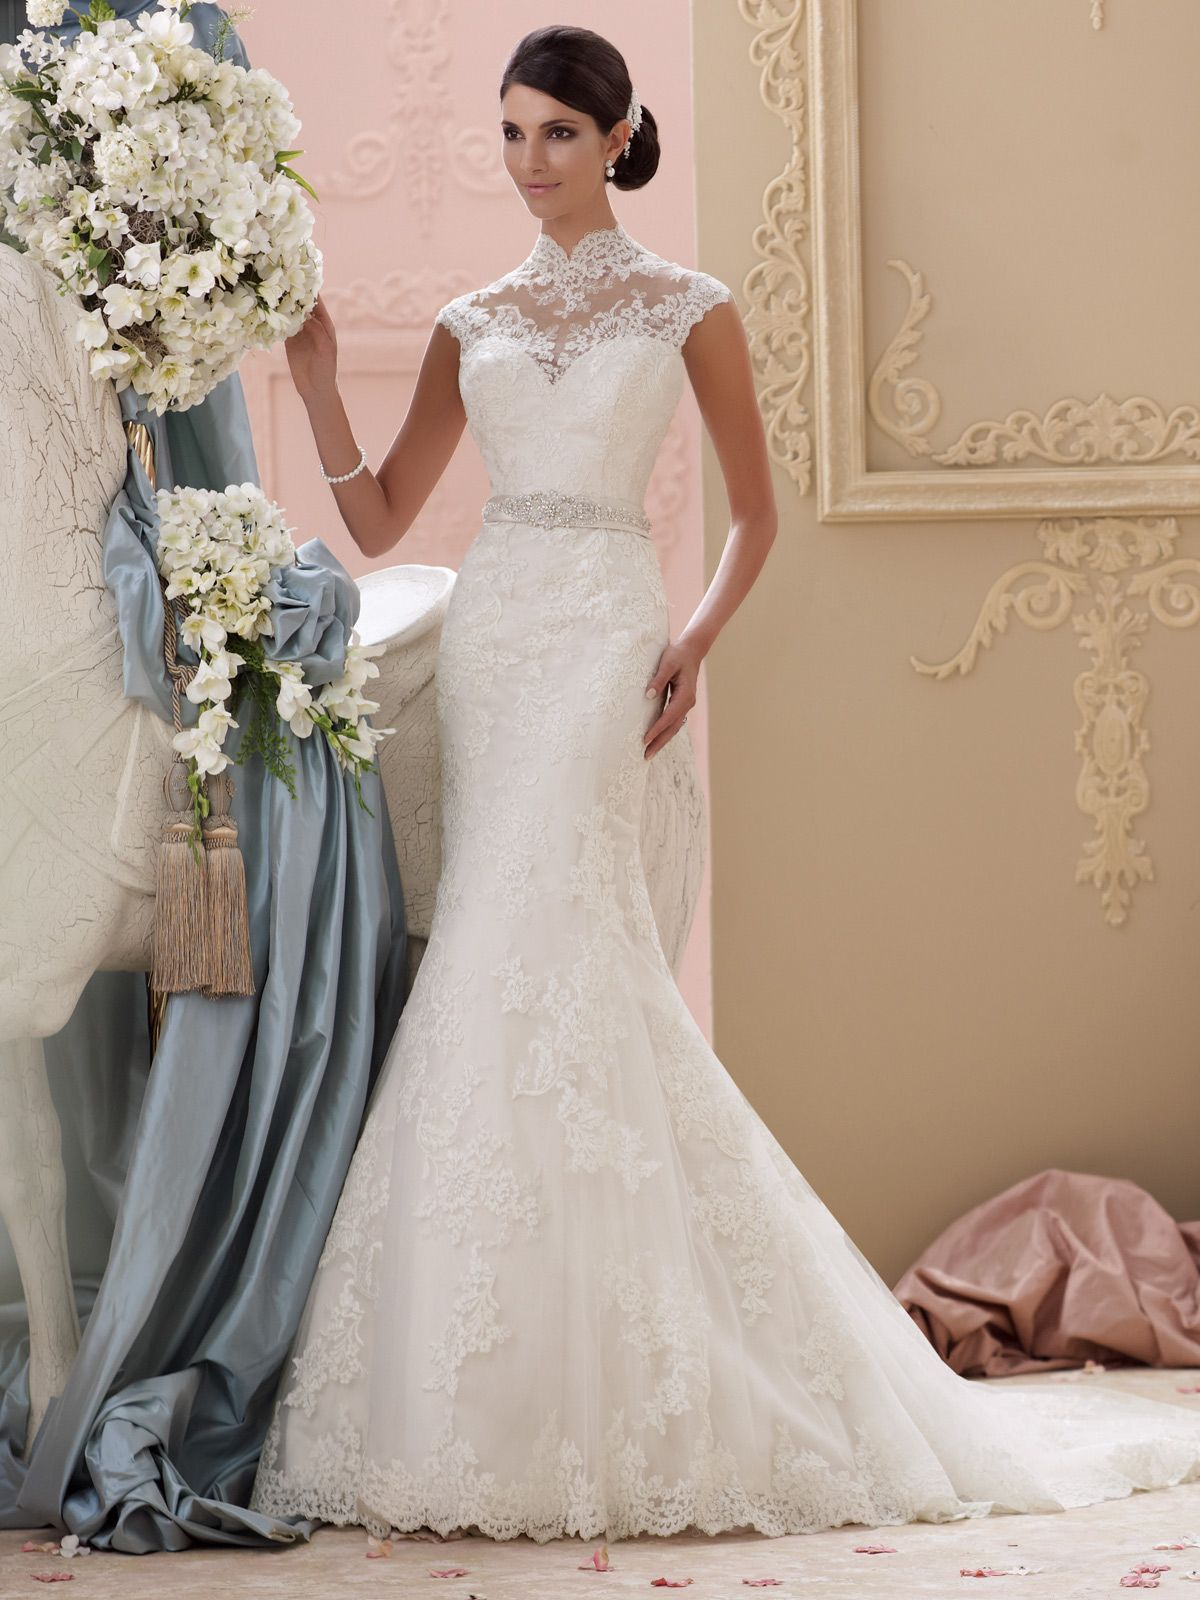 Style 115227 Everly Is An Modest Wedding Dress With Illusion High Neckline Designed By David Tutera For Mon Cheri Click More Information